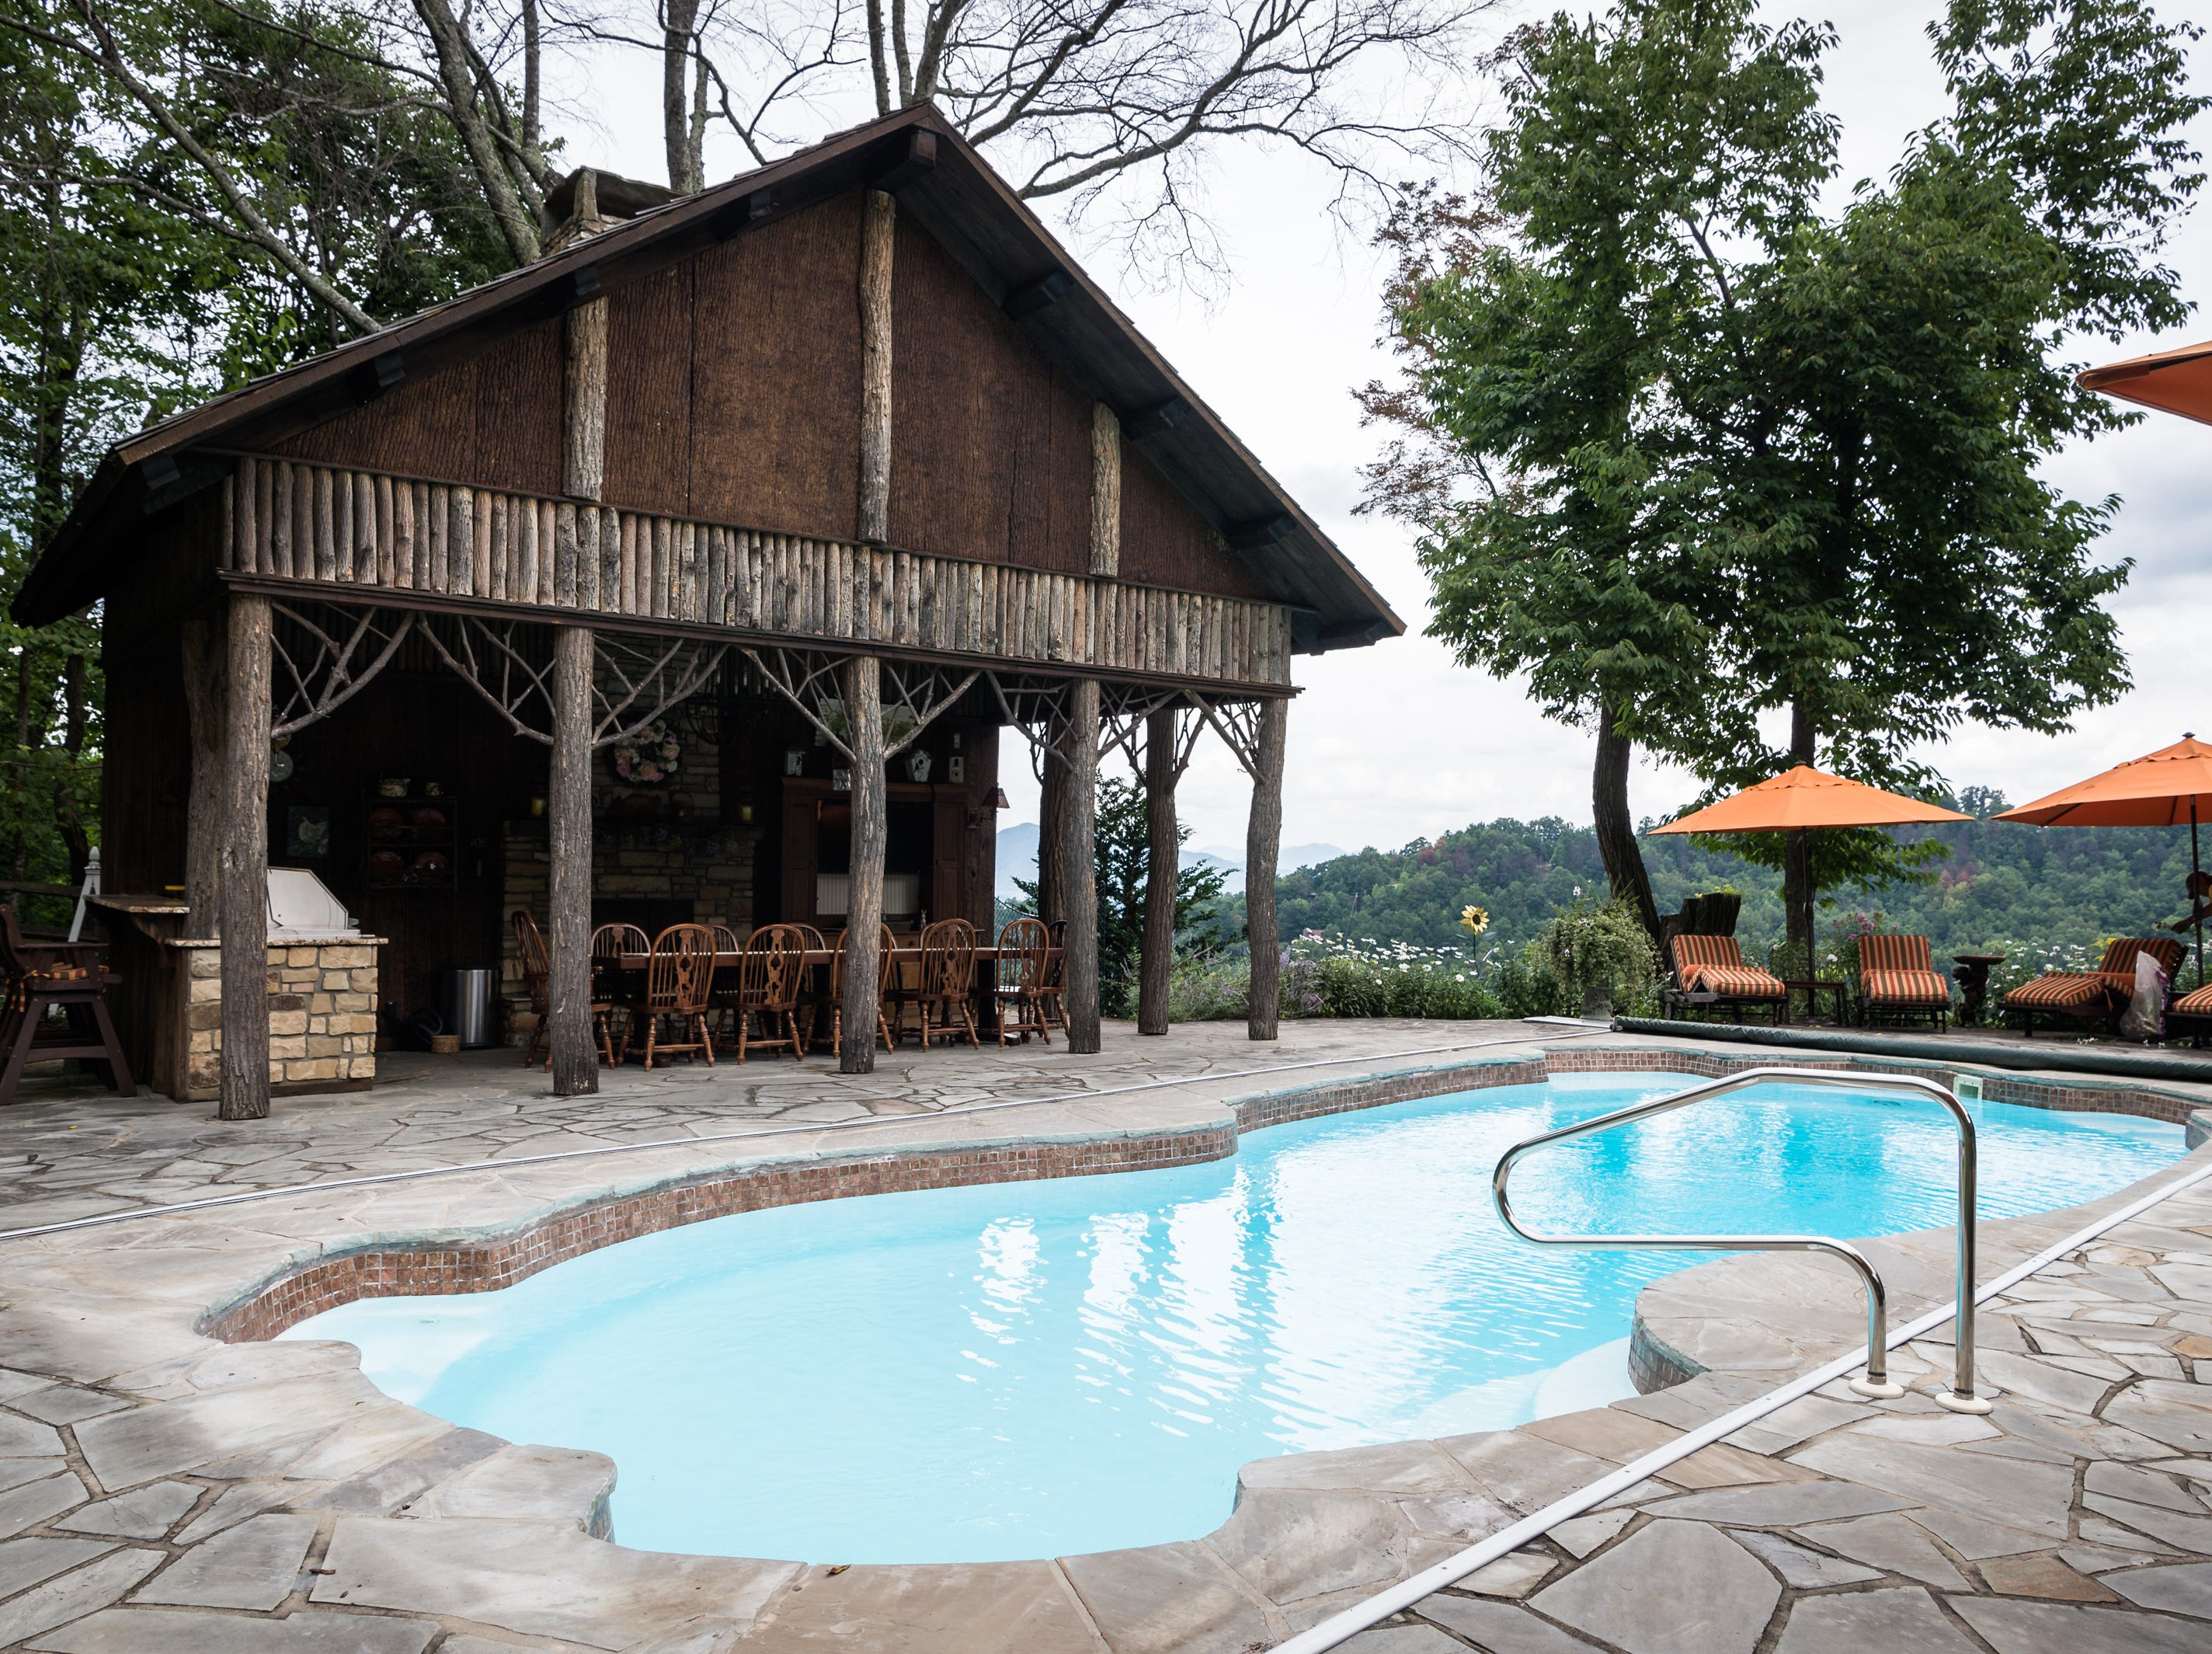 The pool area of Dan and Belle Fangmeyer's log cabin in Waynesville.